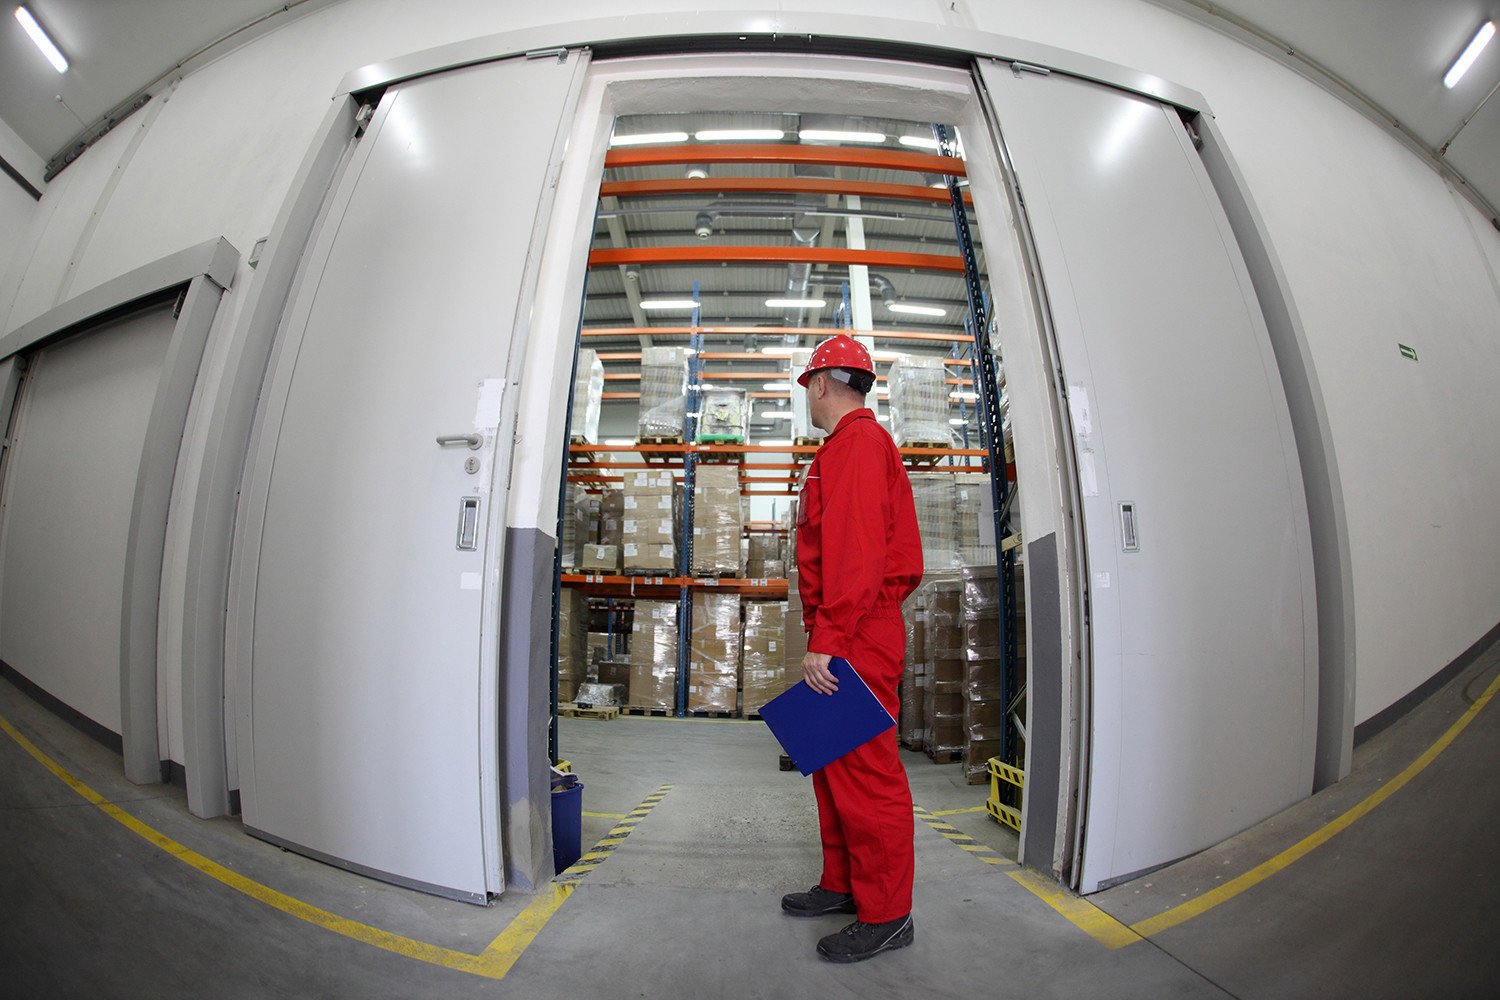 Warehousing Applications - Access Control in Warehousing|Australia CipherLab world leader in AIDC solutions